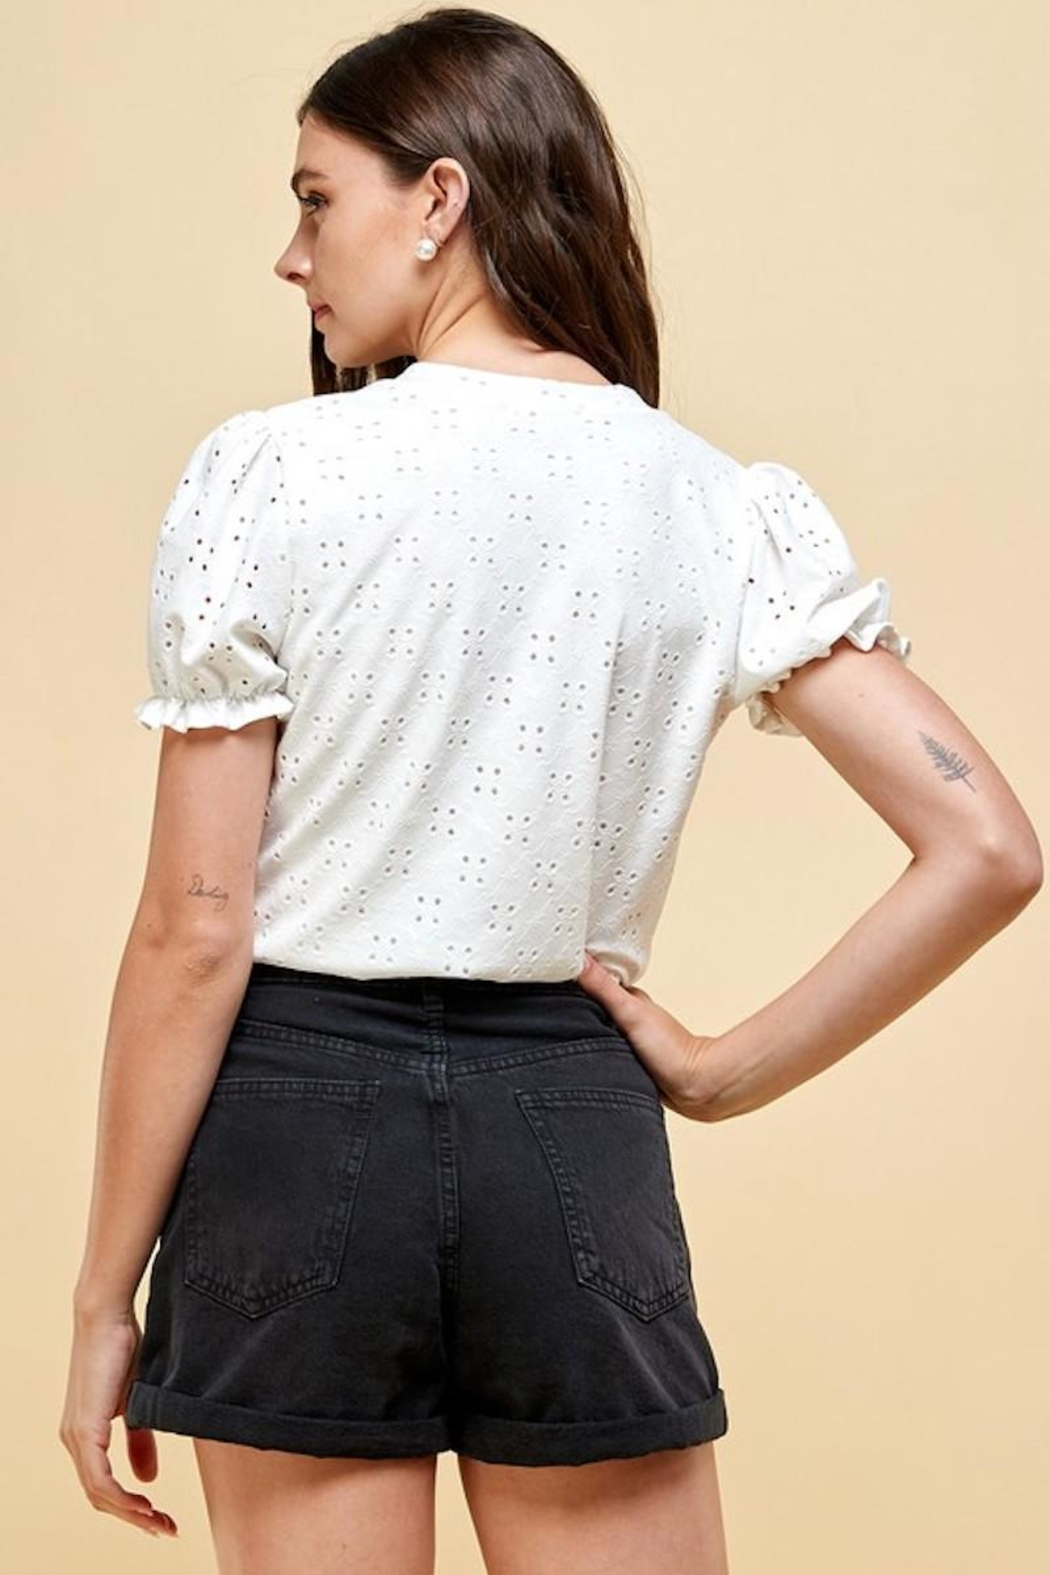 Les Amis Emily's Eyelet Top In White - Side Cropped Image